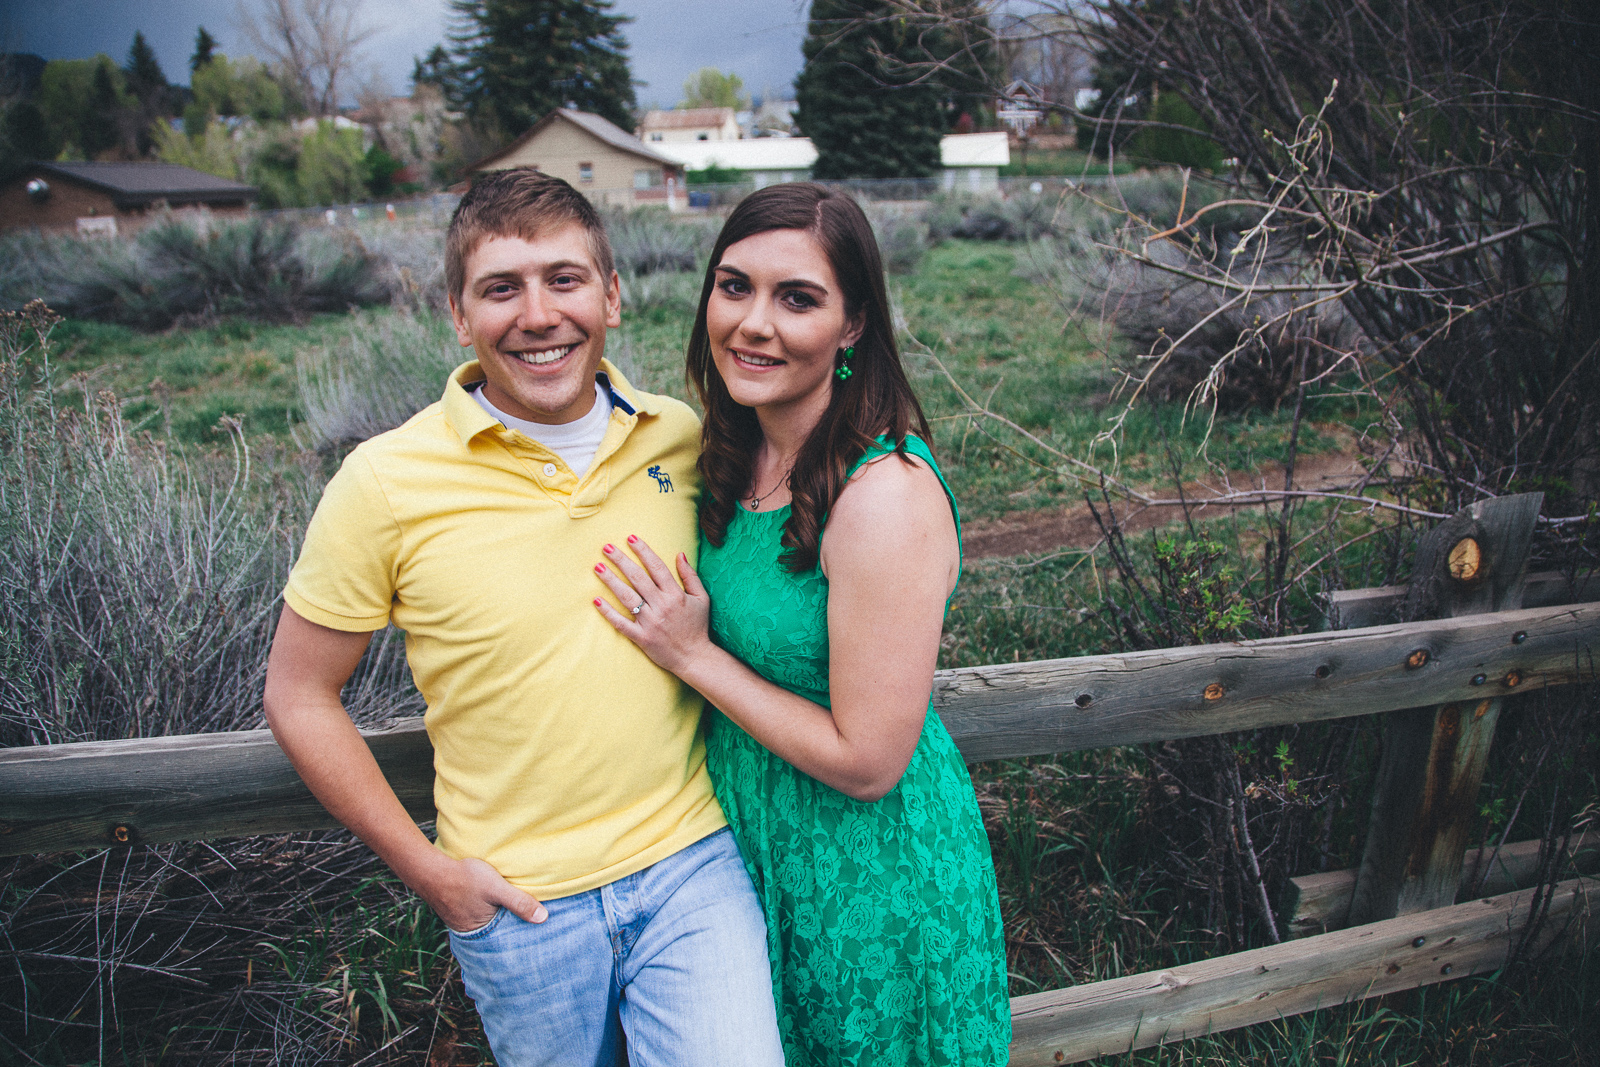 048-engagement-trees-fun-wedding-train-laughing-durango-colorado-farmington-candid